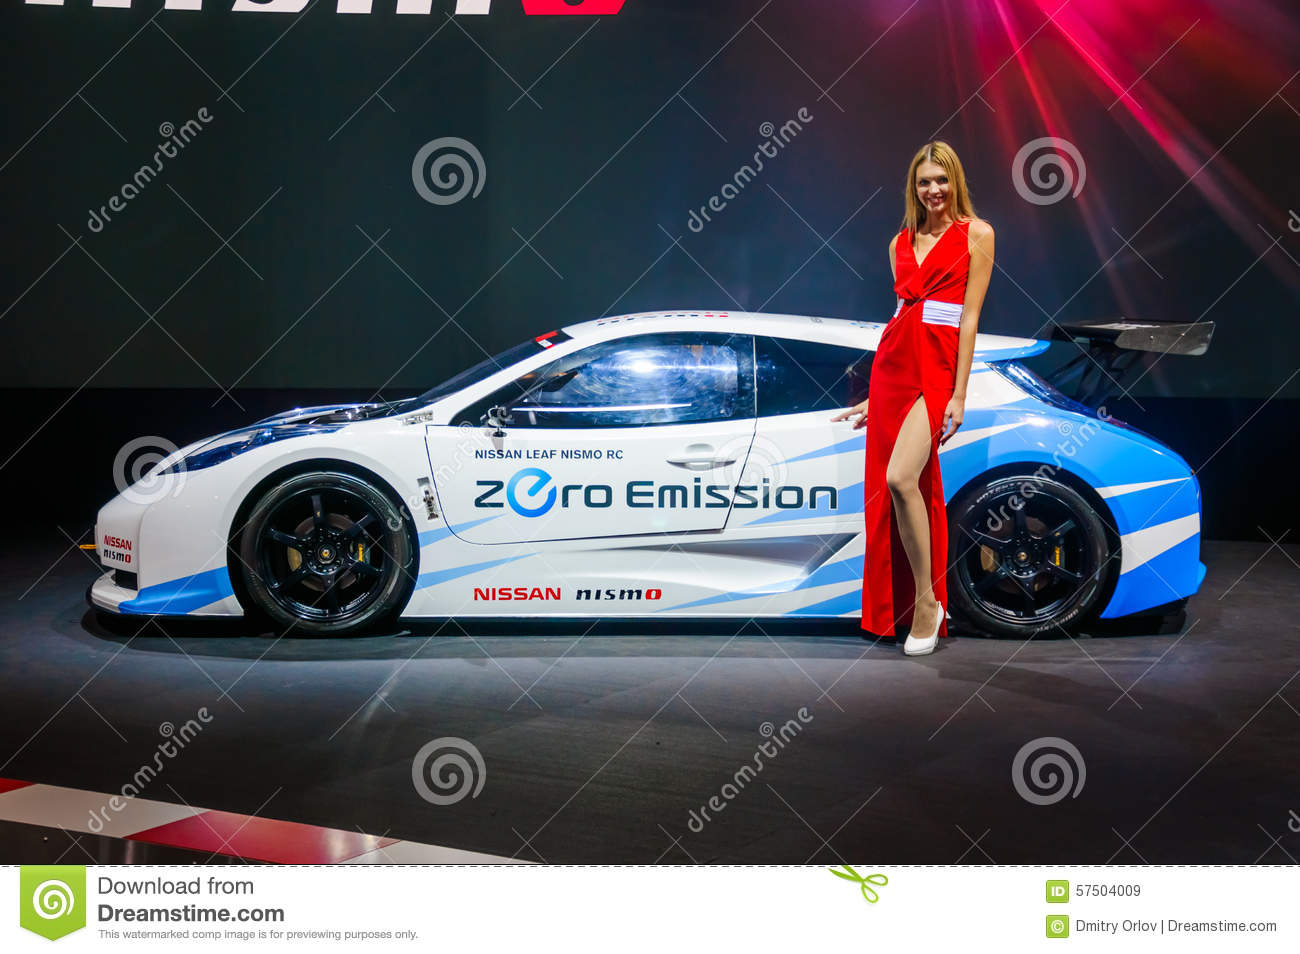 moscow-russia-aug-nissan-leaf-nismo-rc-presented-as-wor-world-premiere-th-mias-international-automobile-salon-august-57504009.jpg